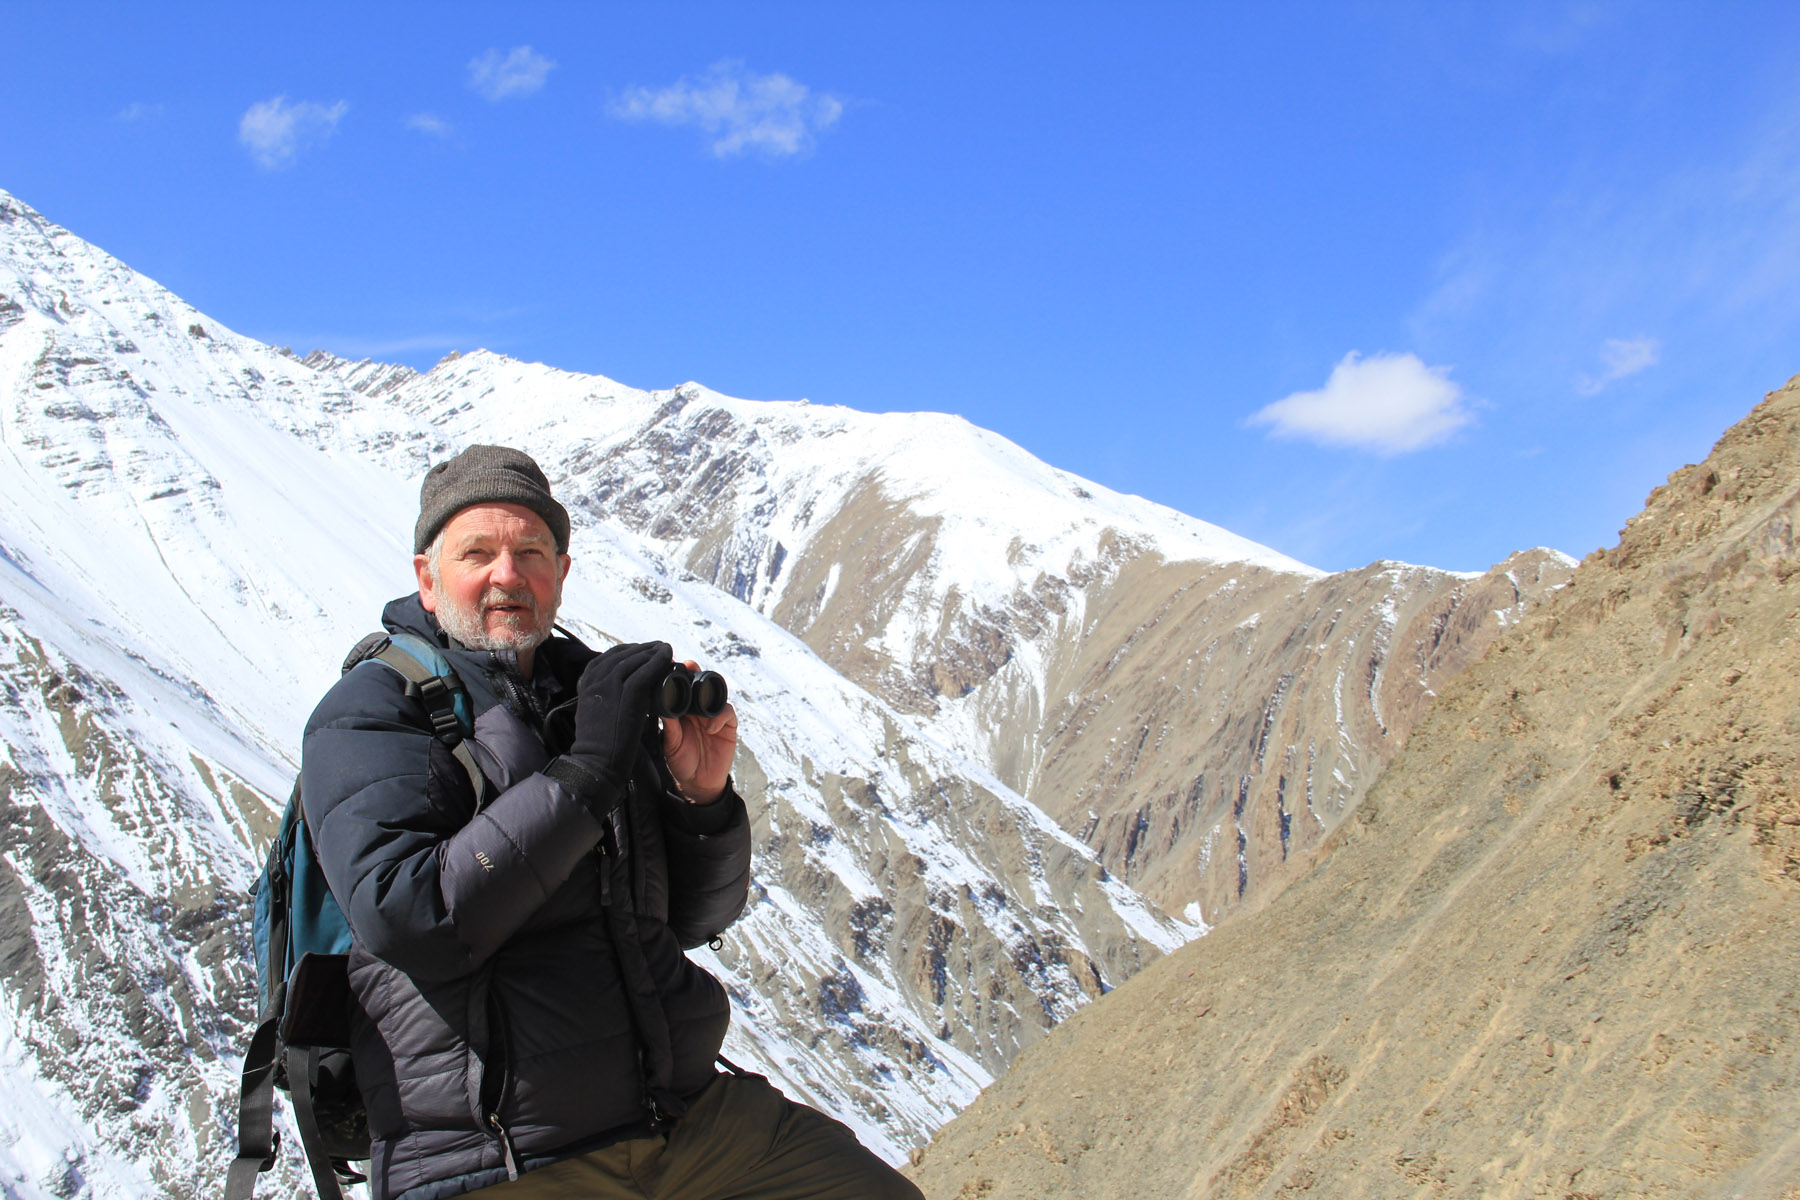 Rodney in front of a mountain vistas in Hemis National Park in Ladakh India - 2013